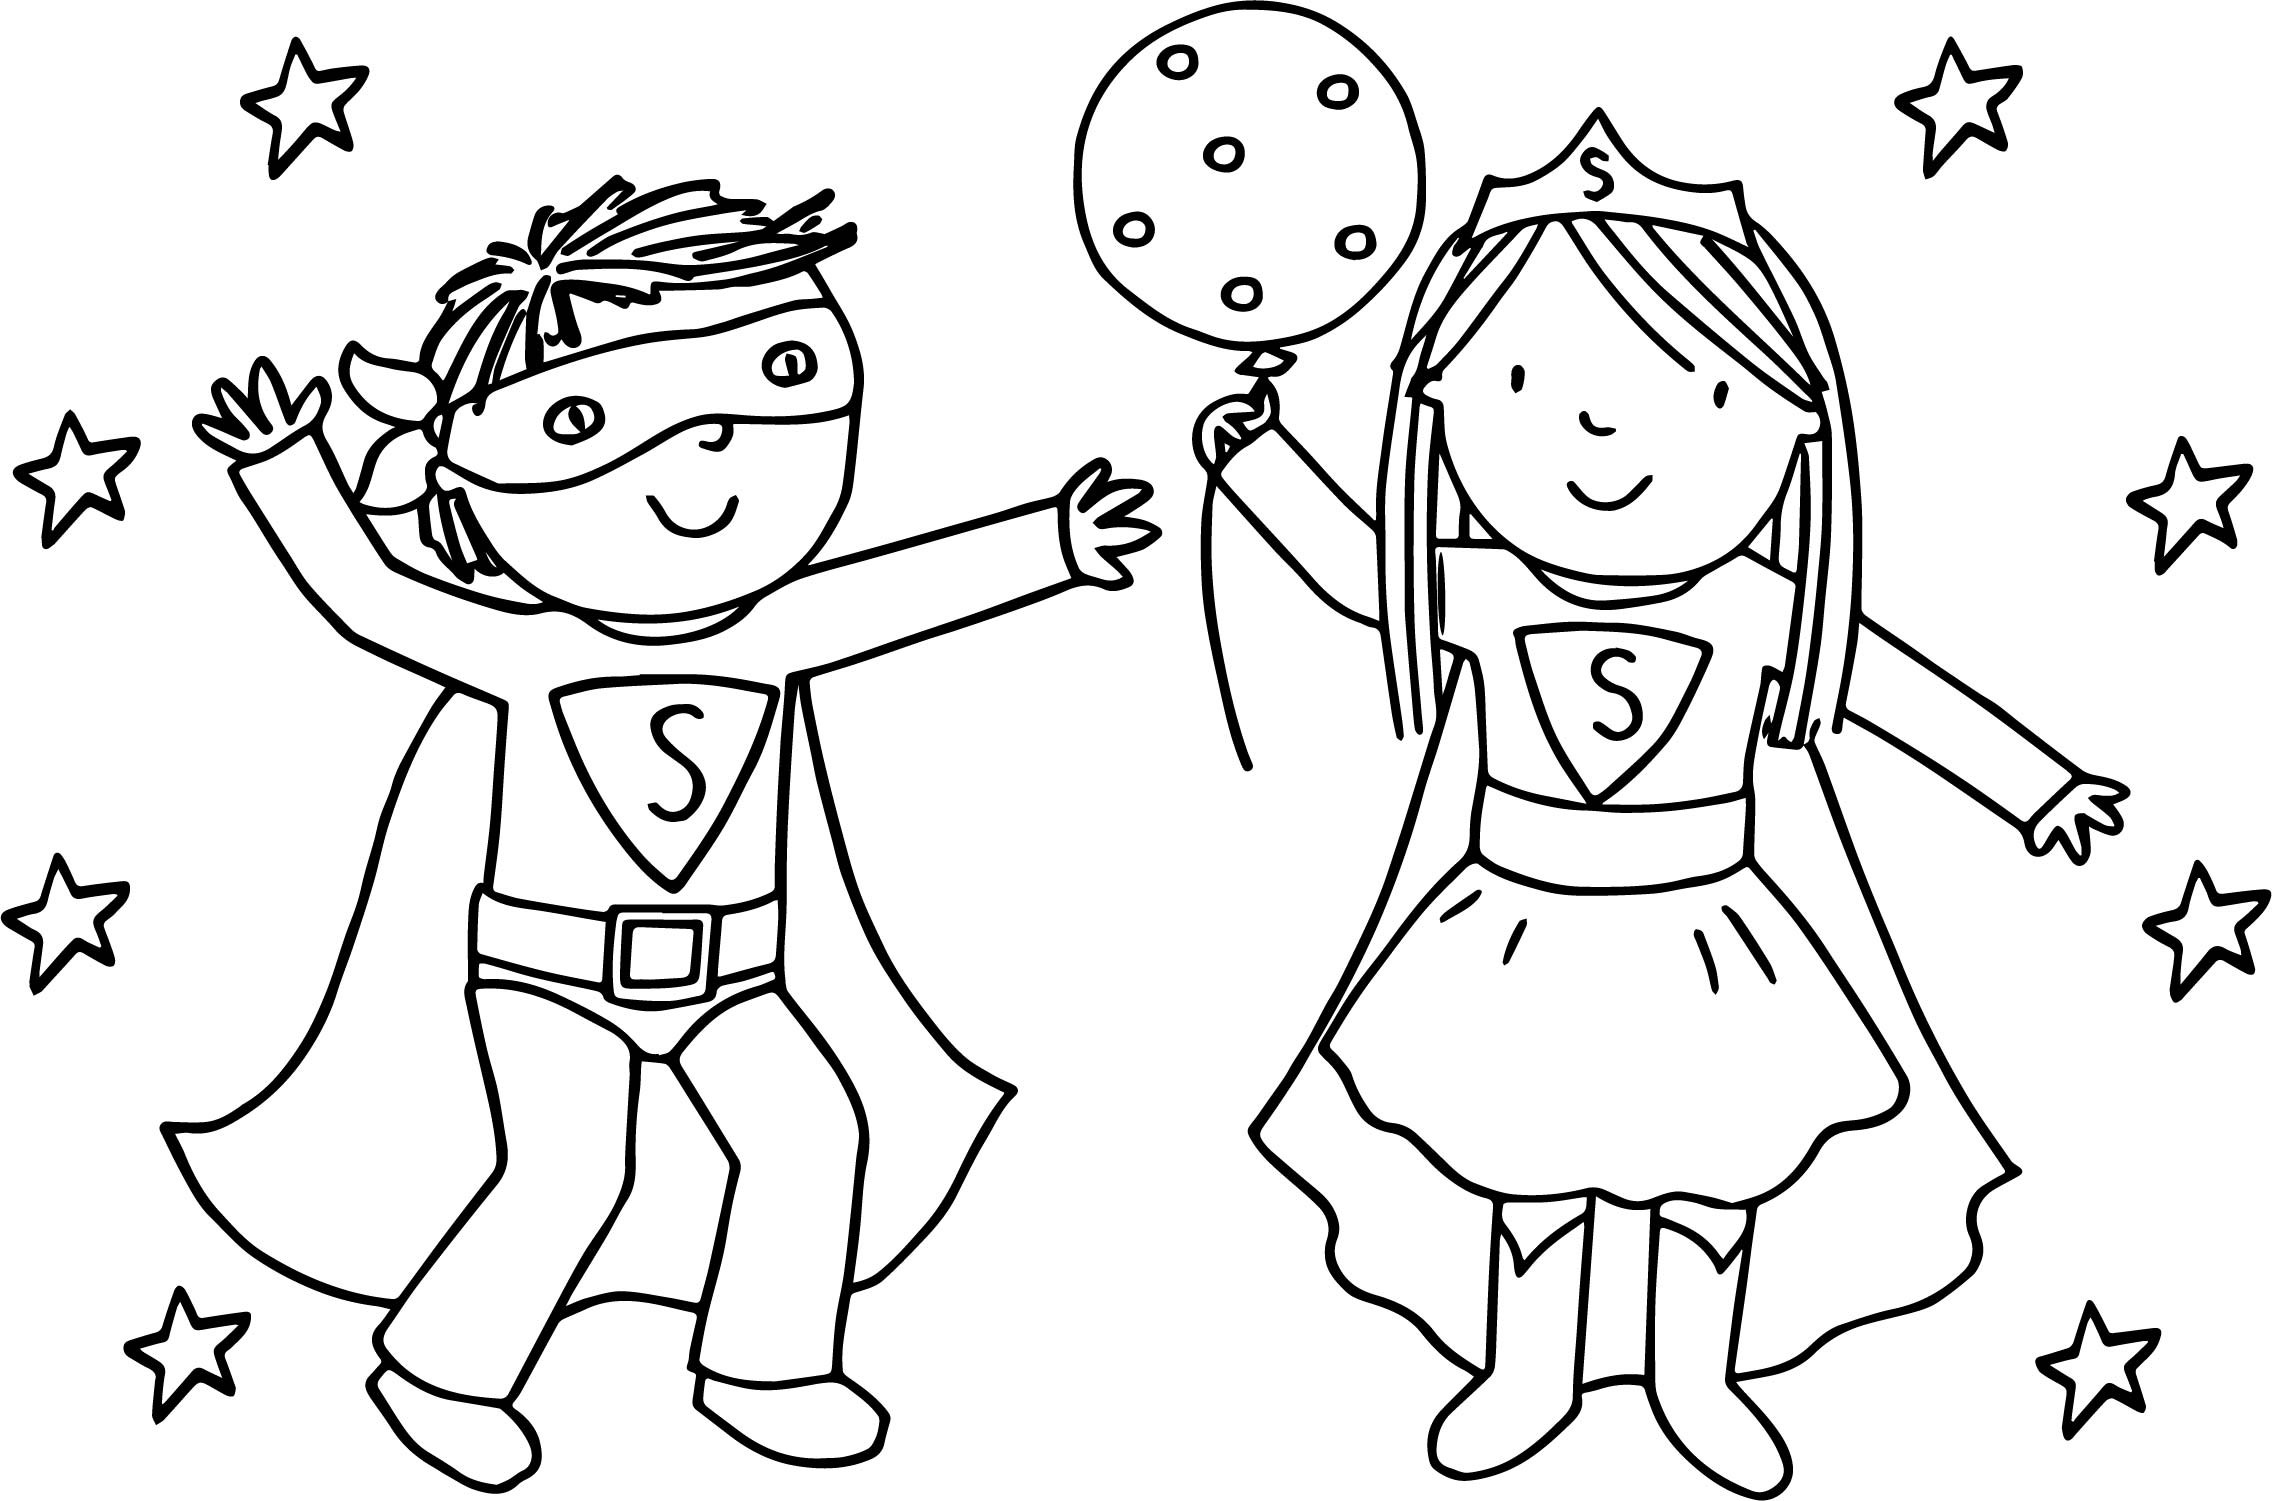 coloring pages boys and girls japanese boy and girl coloring page free printable and girls coloring boys pages